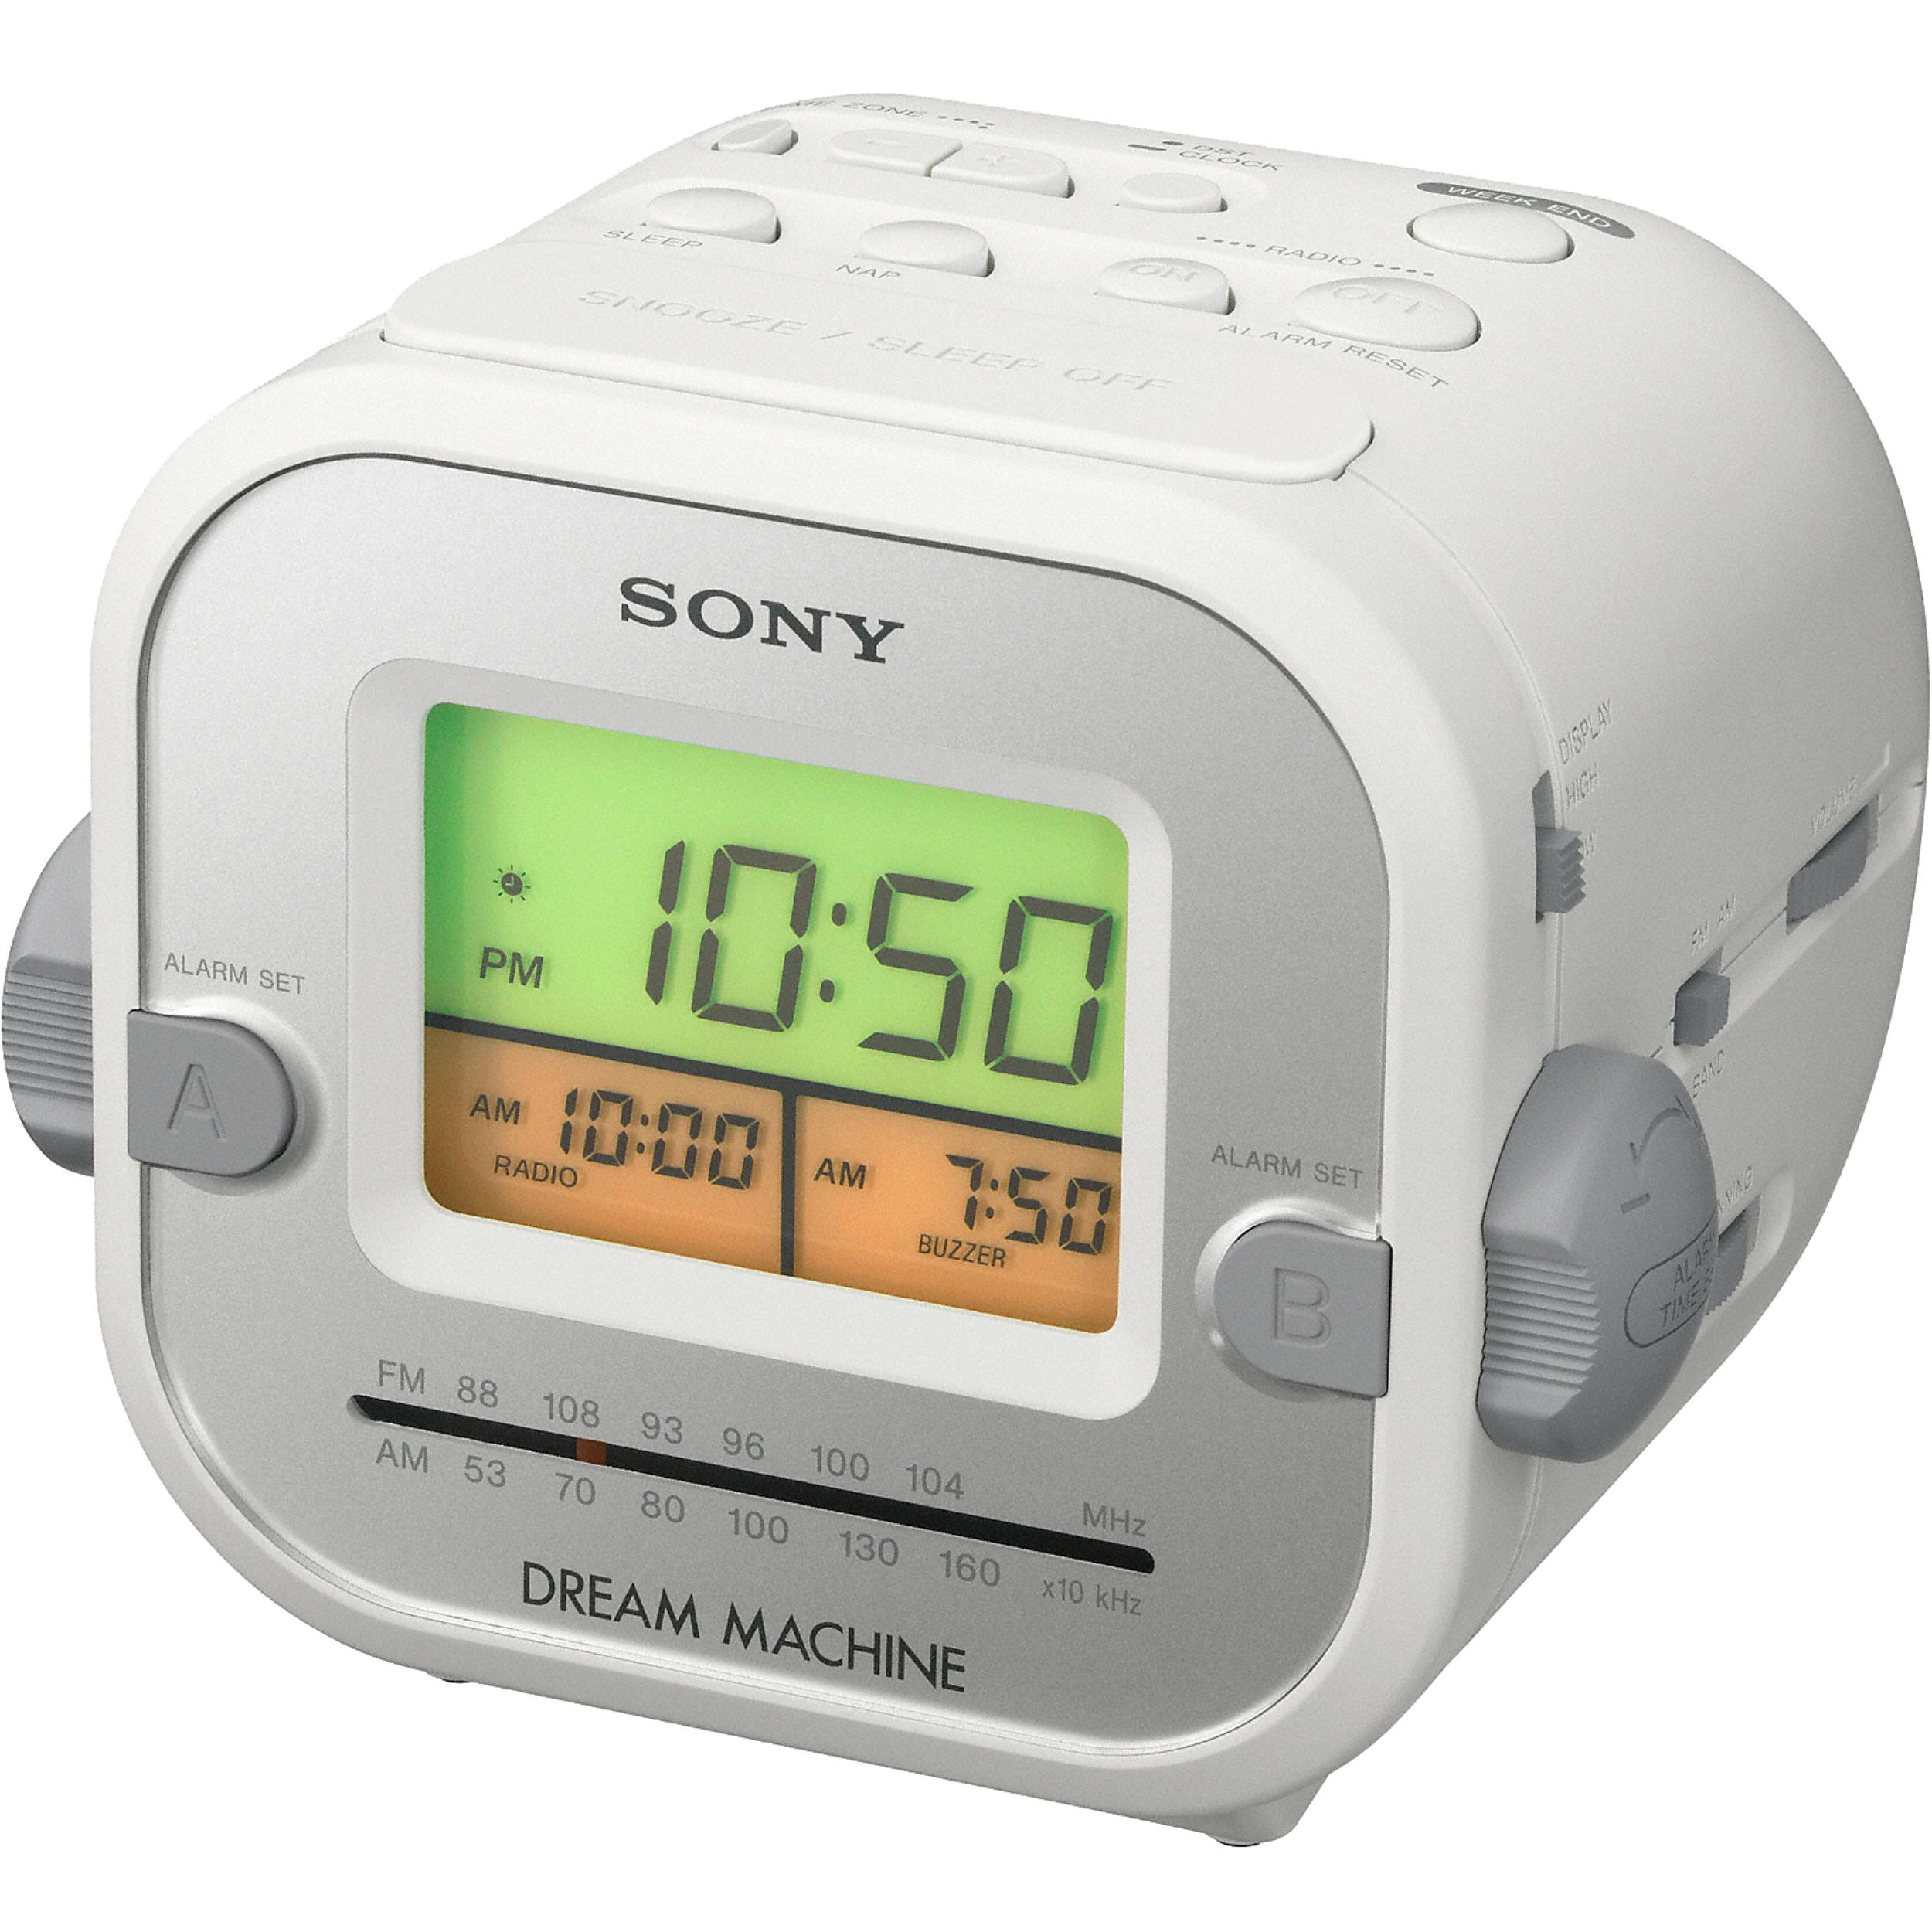 sony dream machine auto time set alarm clock manual